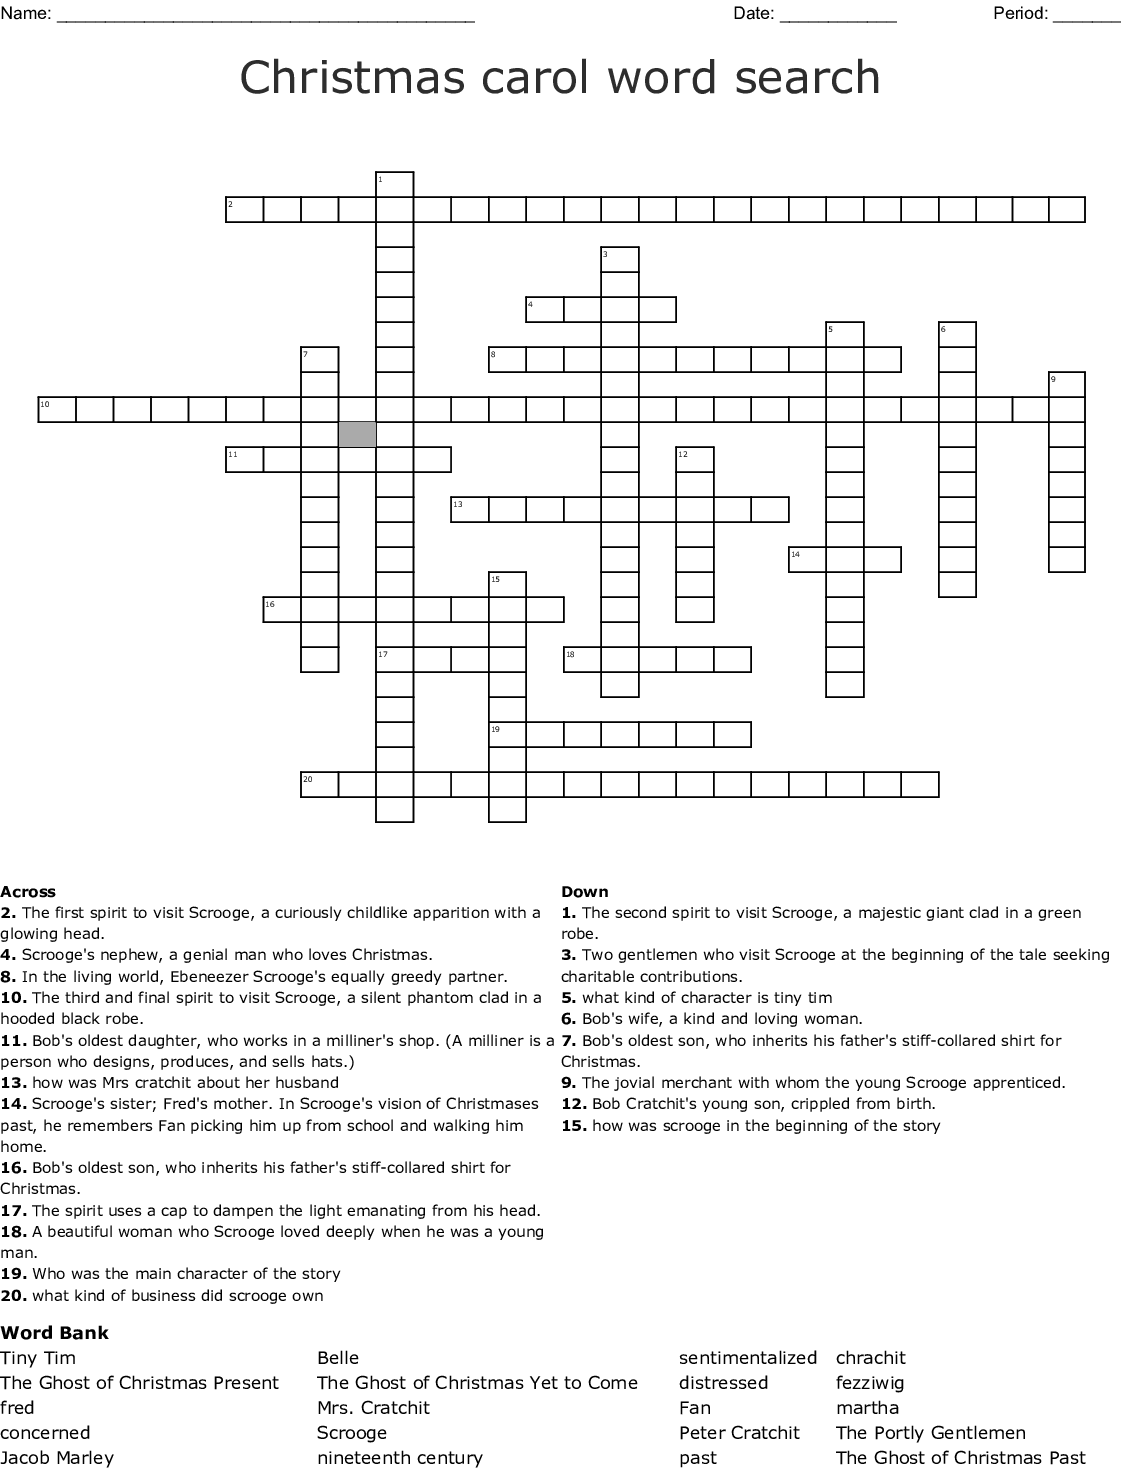 A Christmas Carol By Charles Dickens Crossword